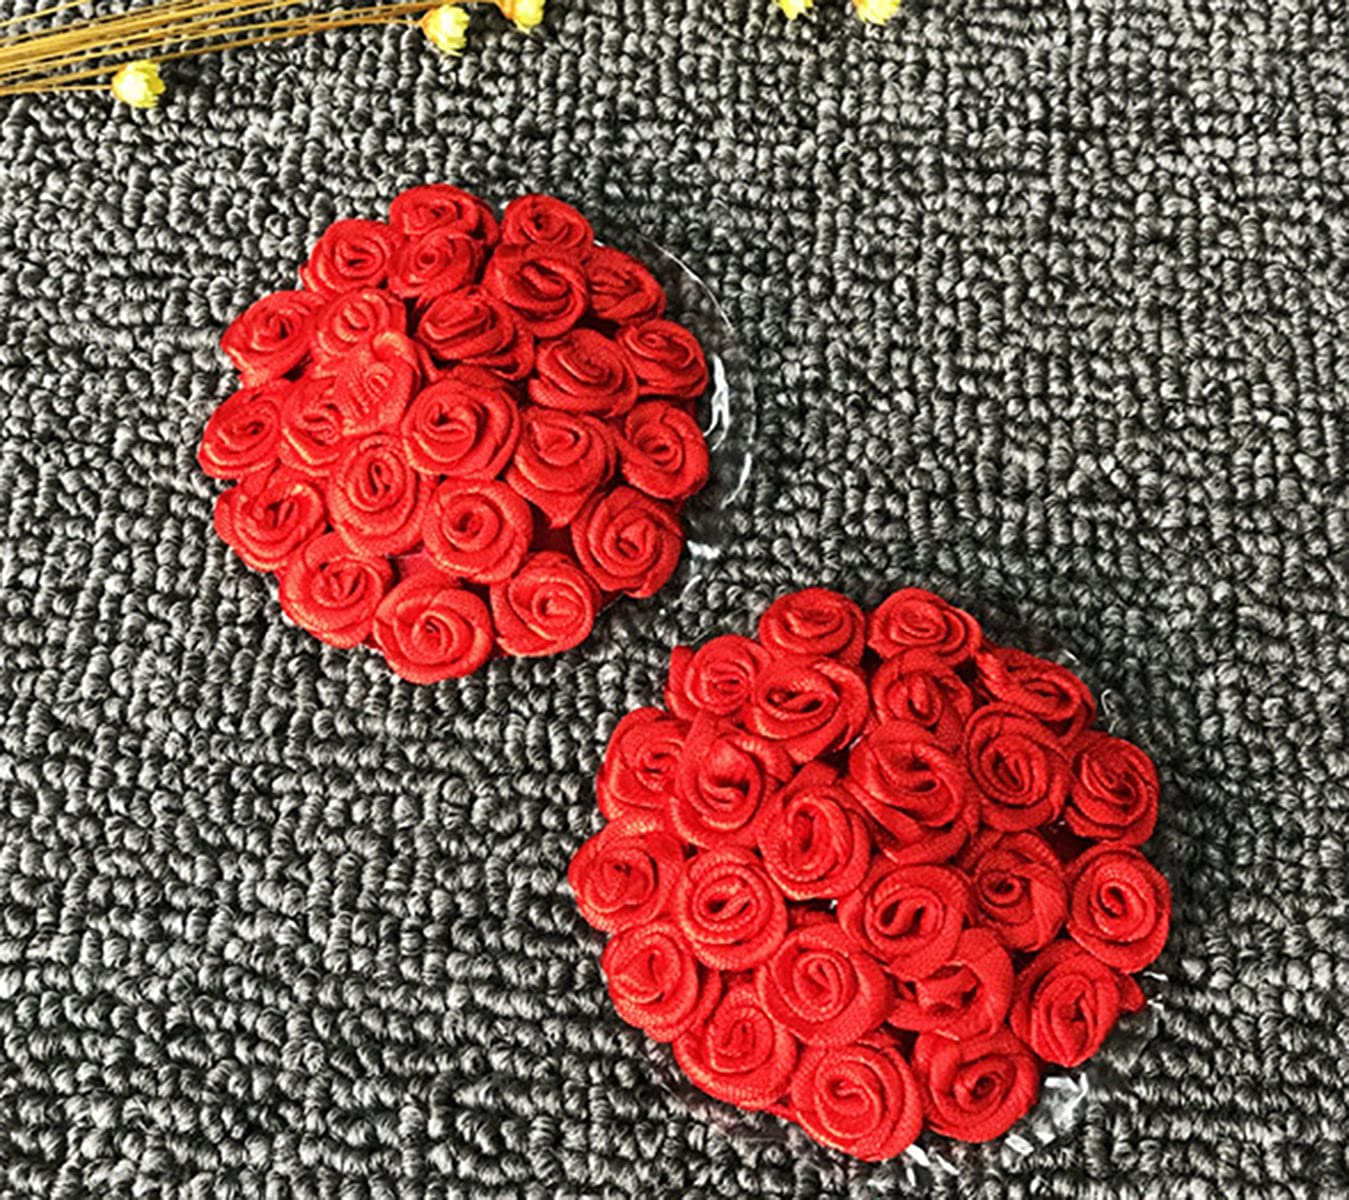 Avivnor Rose Nipple Cover /& Lace Mask For Valentines Day,Lover Gift Charming woman